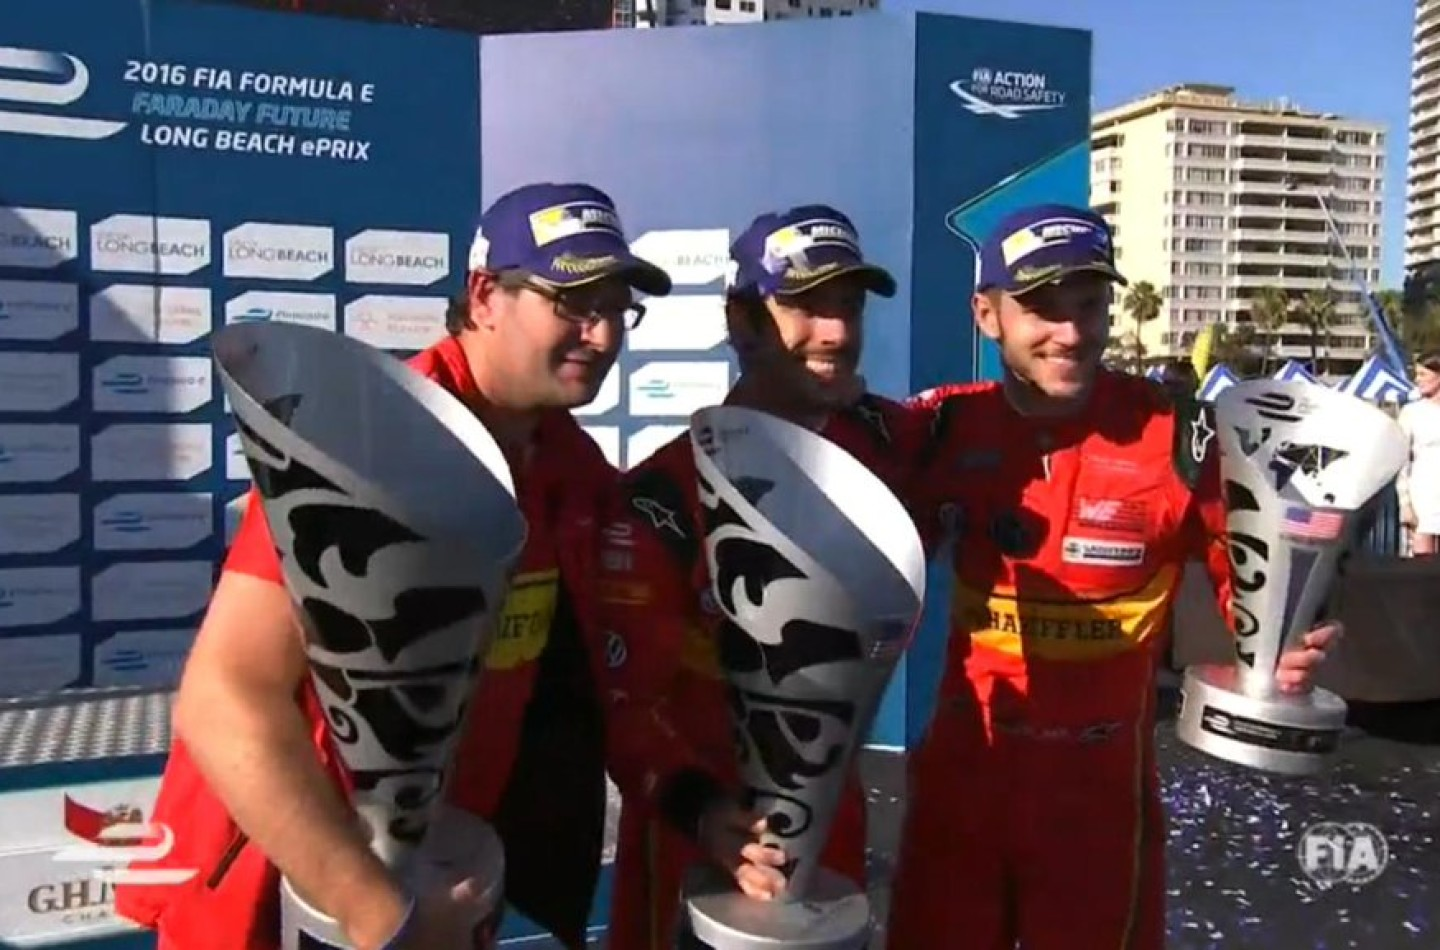 Formula E | Long Beach: di Grassi vince e torna in testa alla classifica